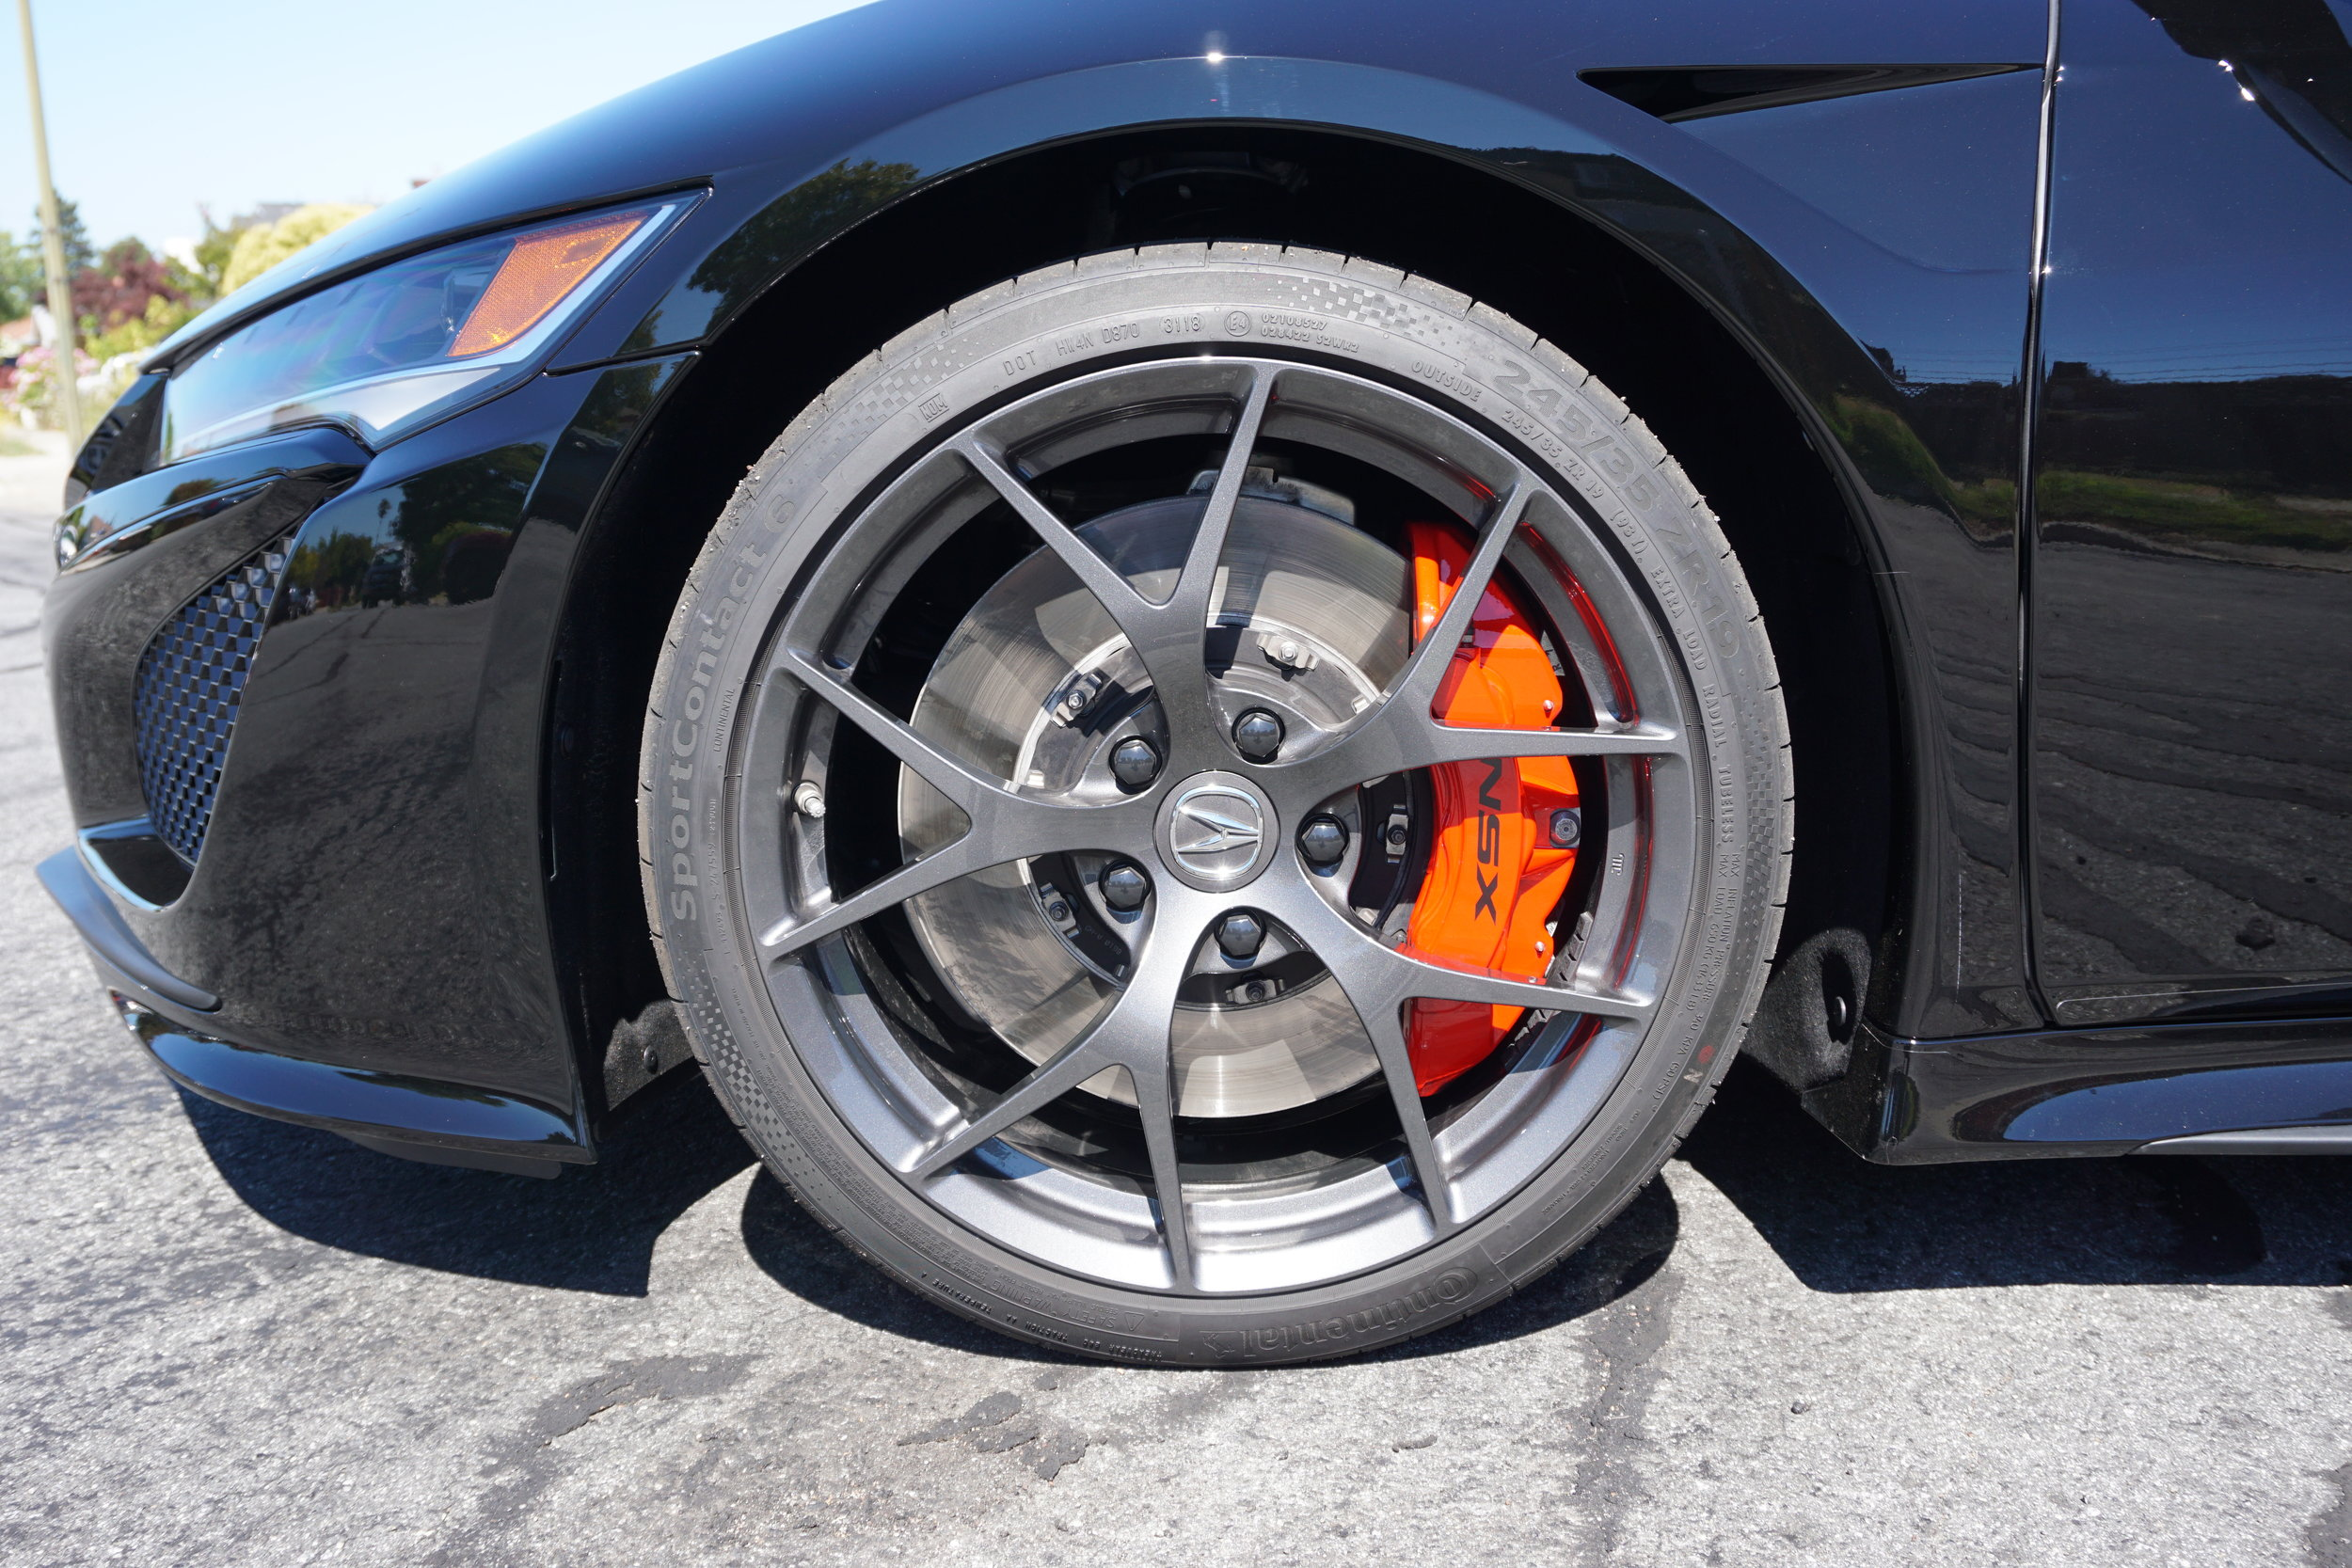 Some sweet stoppers on it. Tires are not dressed yet.